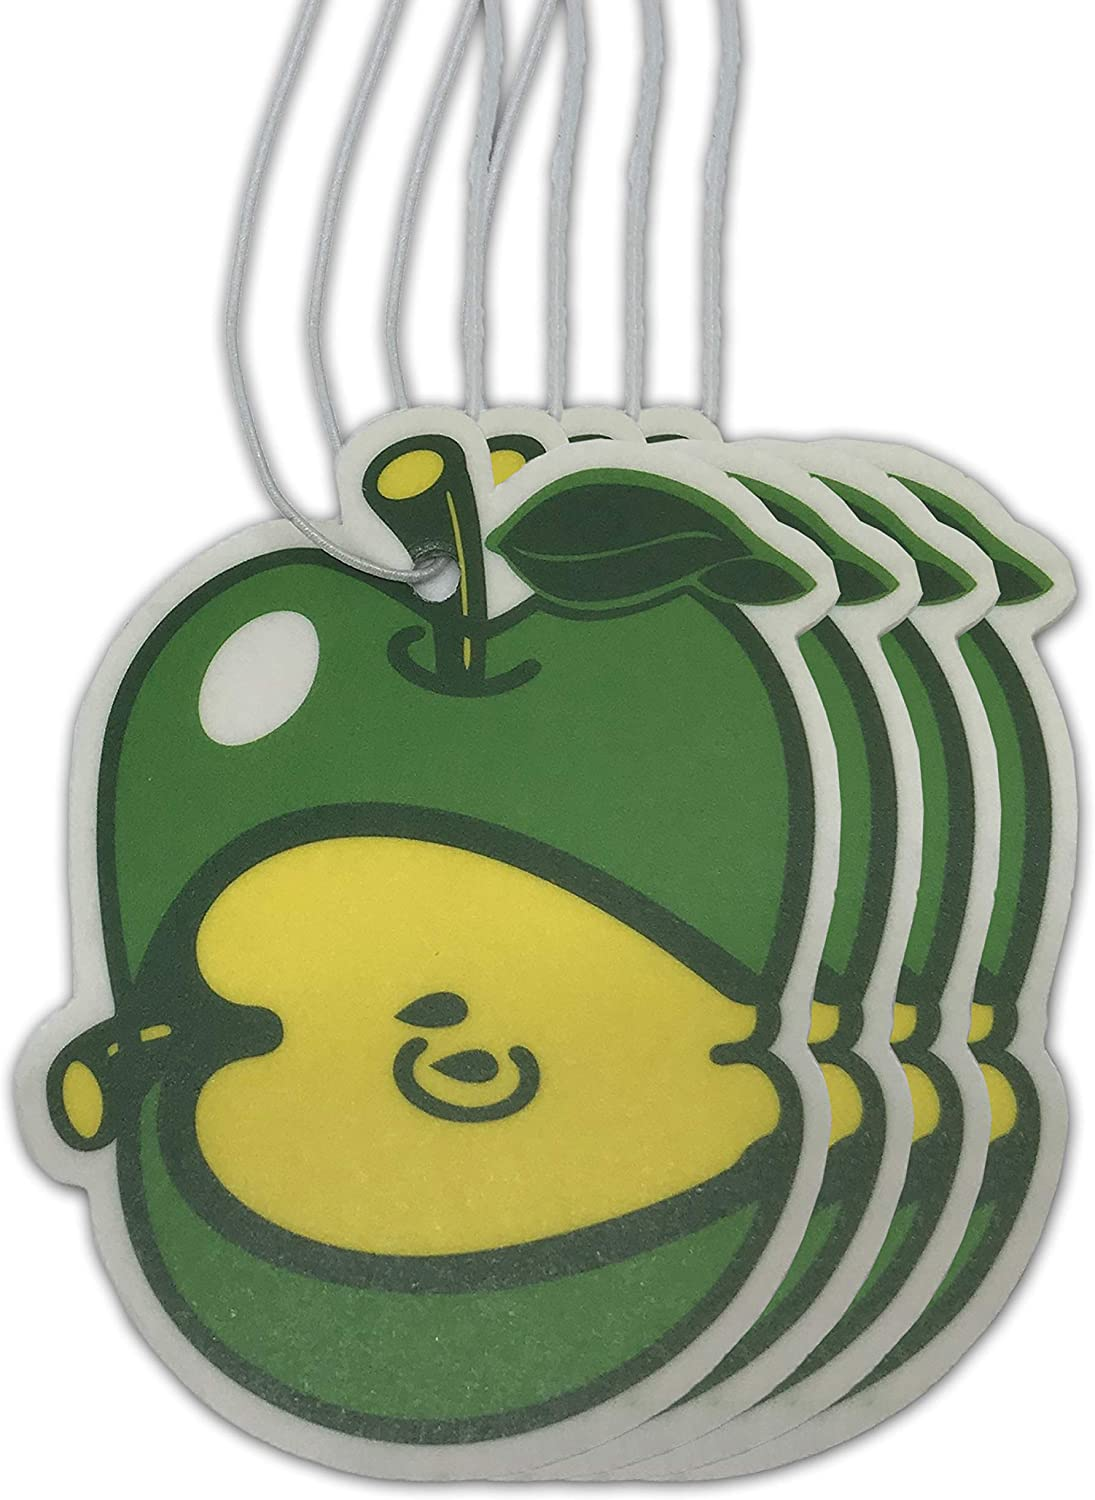 Sonoran Souvenirs Green Apple Air Freshener for Car Fresh Apple Scented Automotive Accessory (Pack of 4)